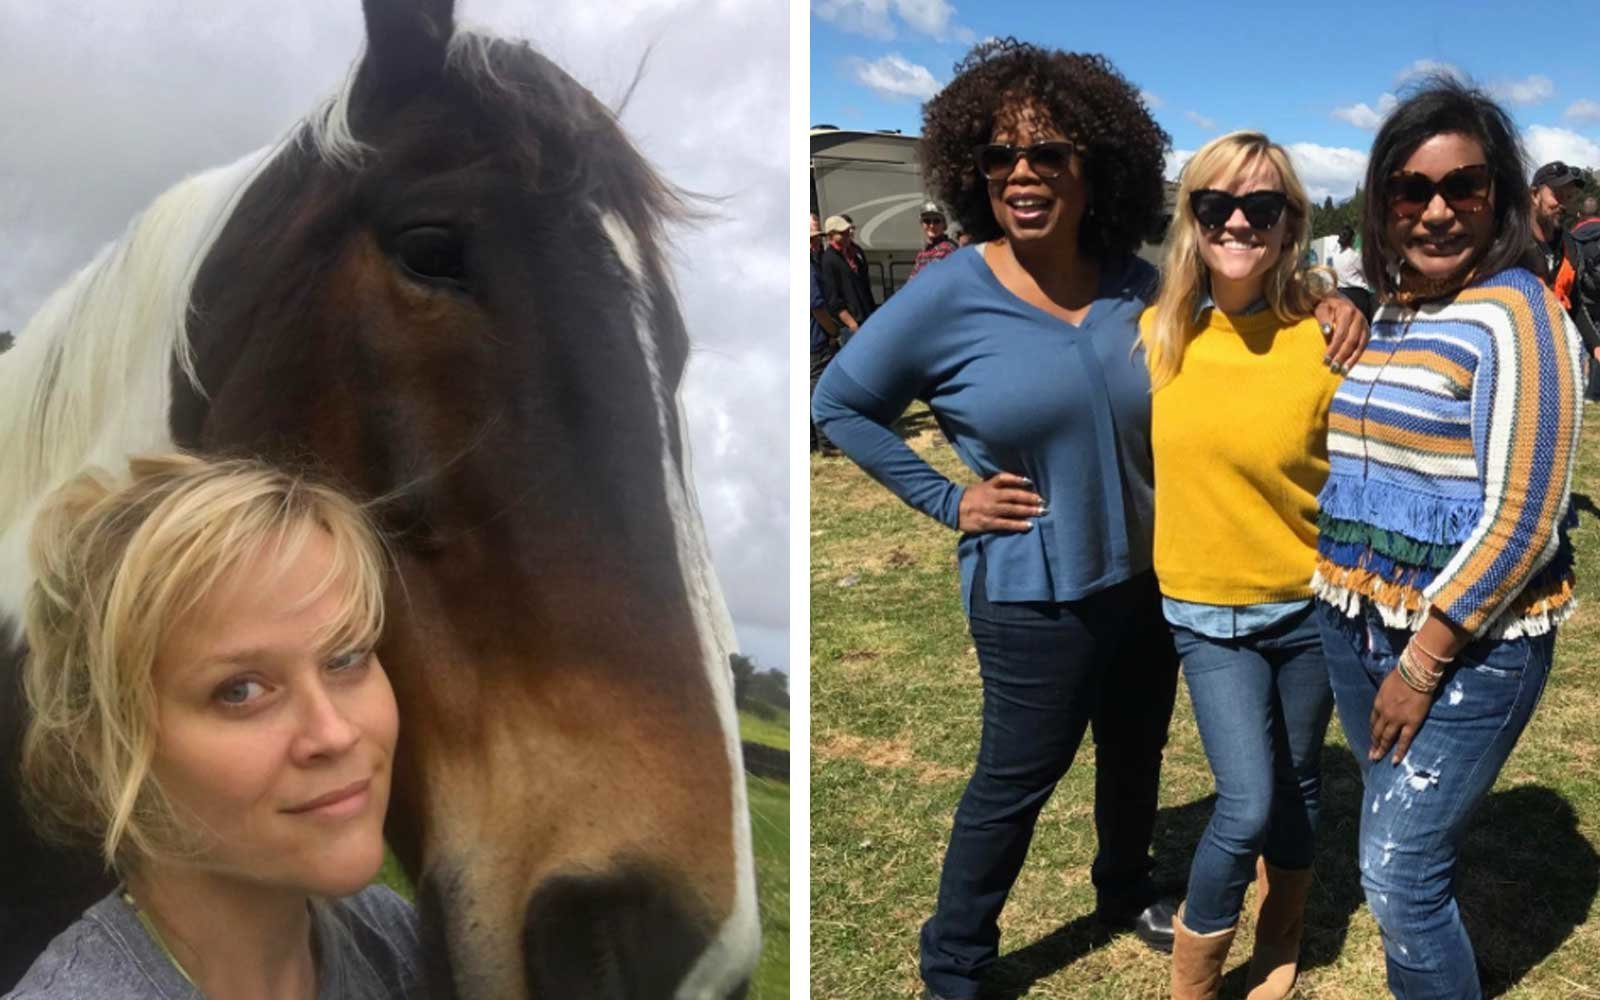 Reese Witherspoon, Mindy Kaling, Oprah in New Zealand